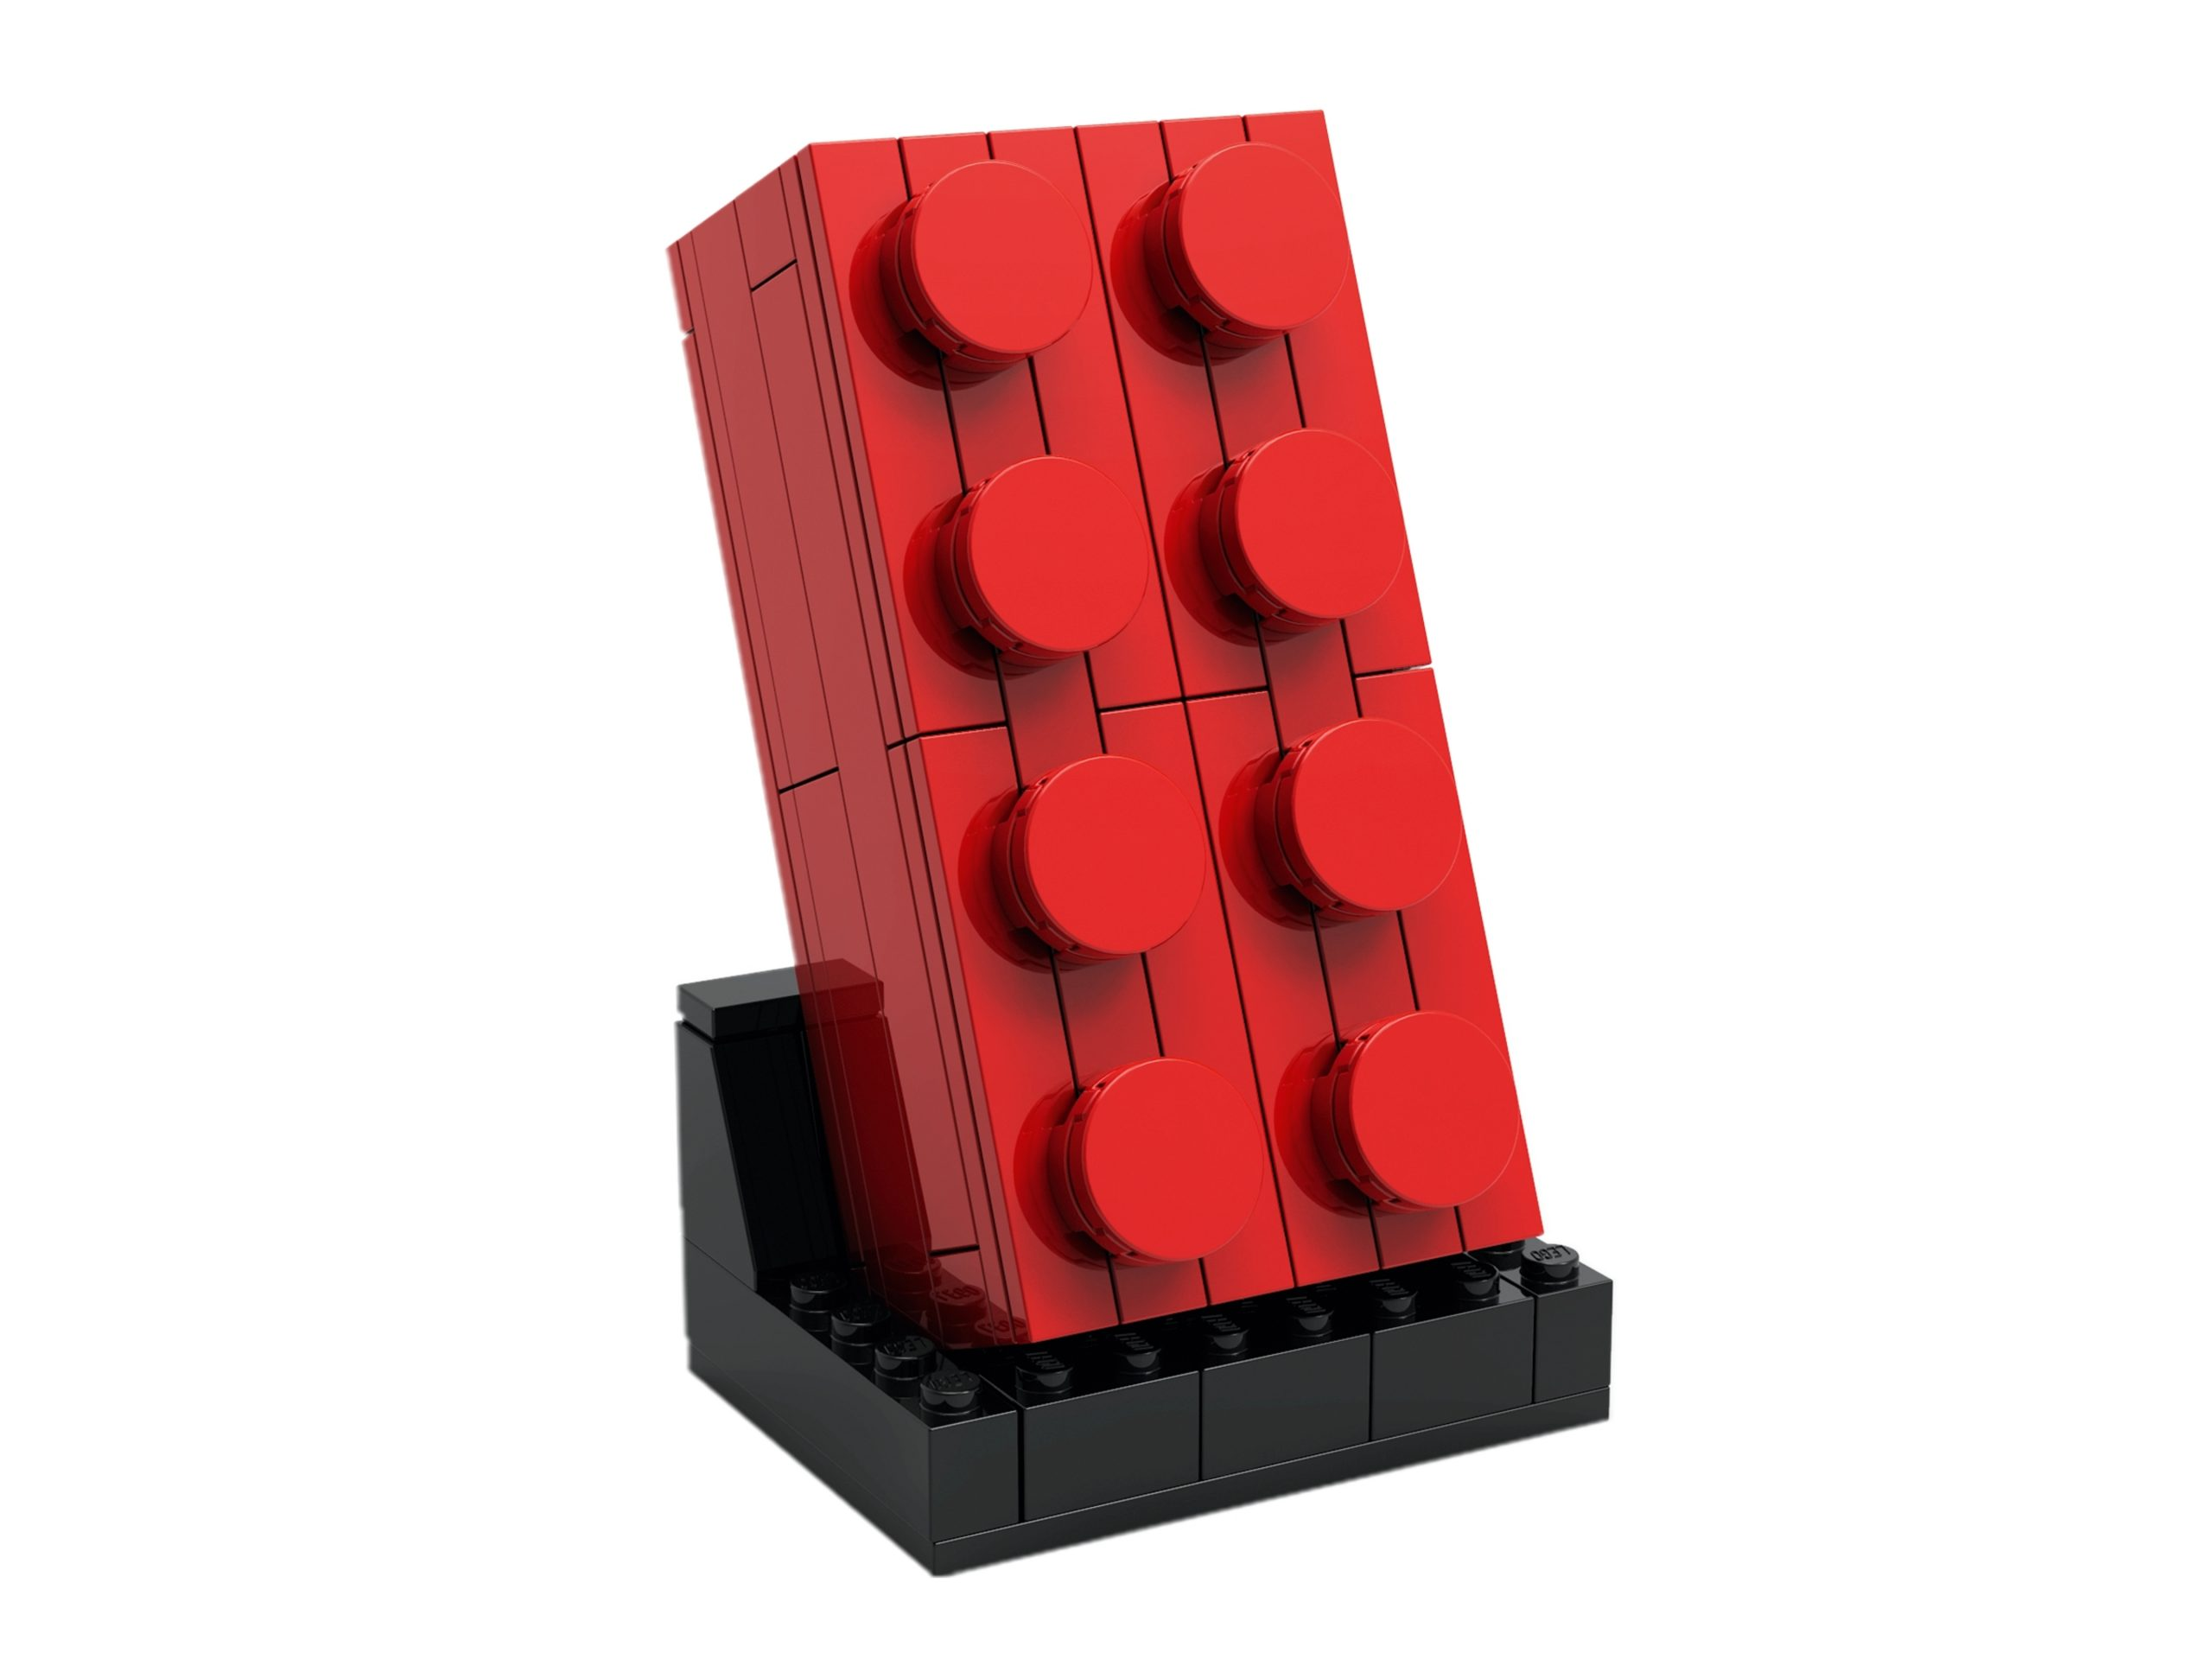 lego 5006085 buildable 2x4 red brick scaled